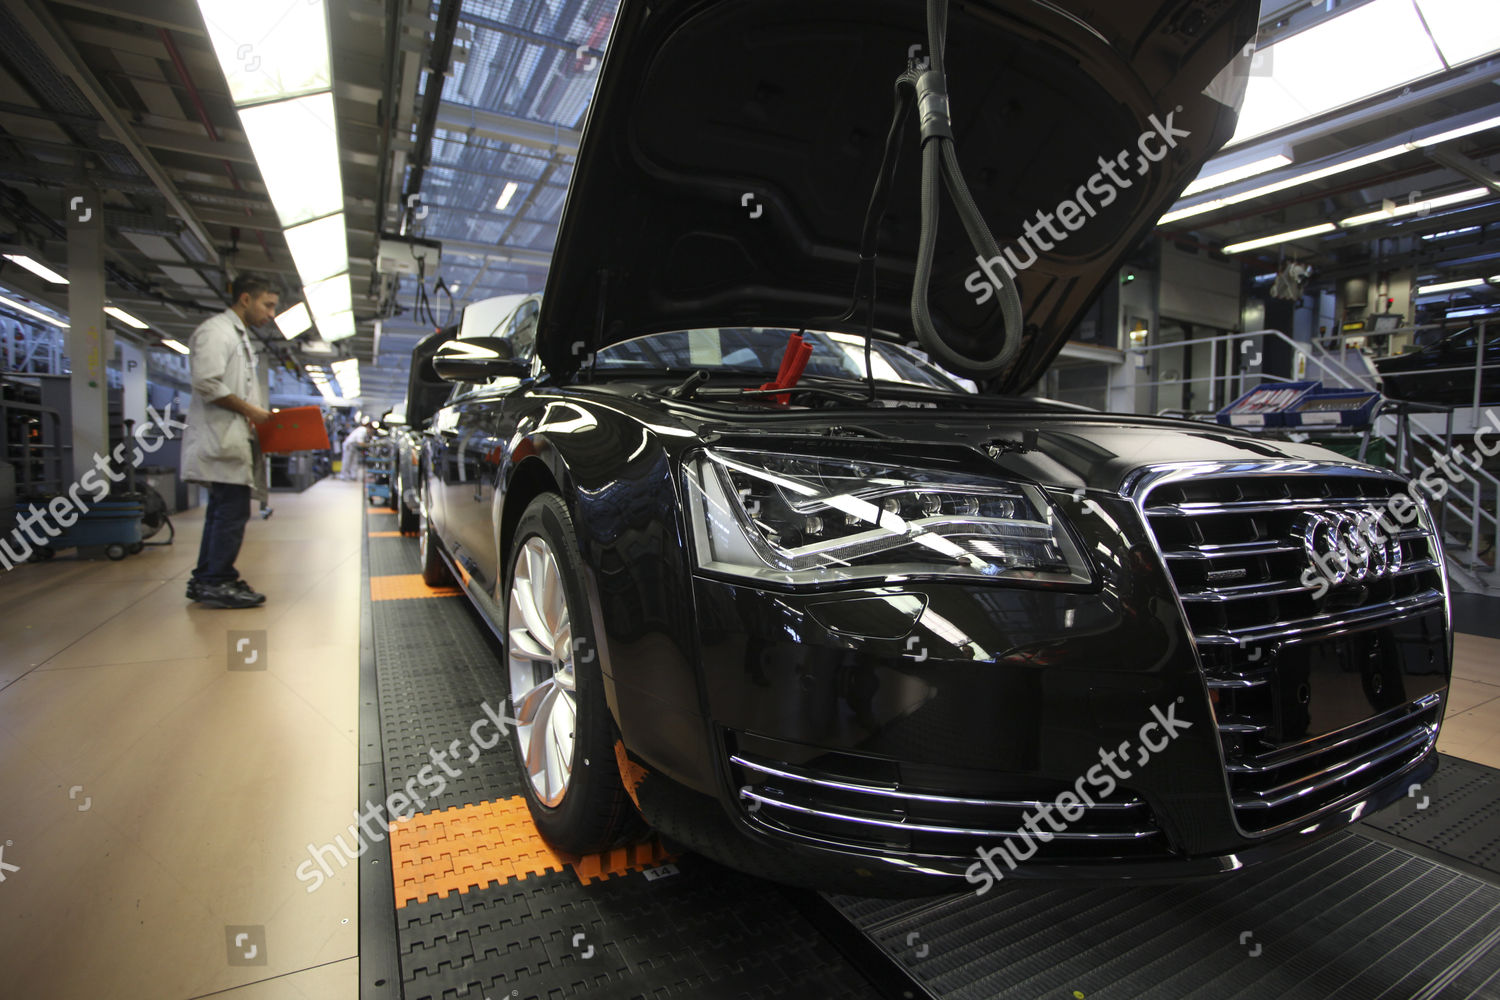 Employees fits parts Audi motorcar on production Editorial